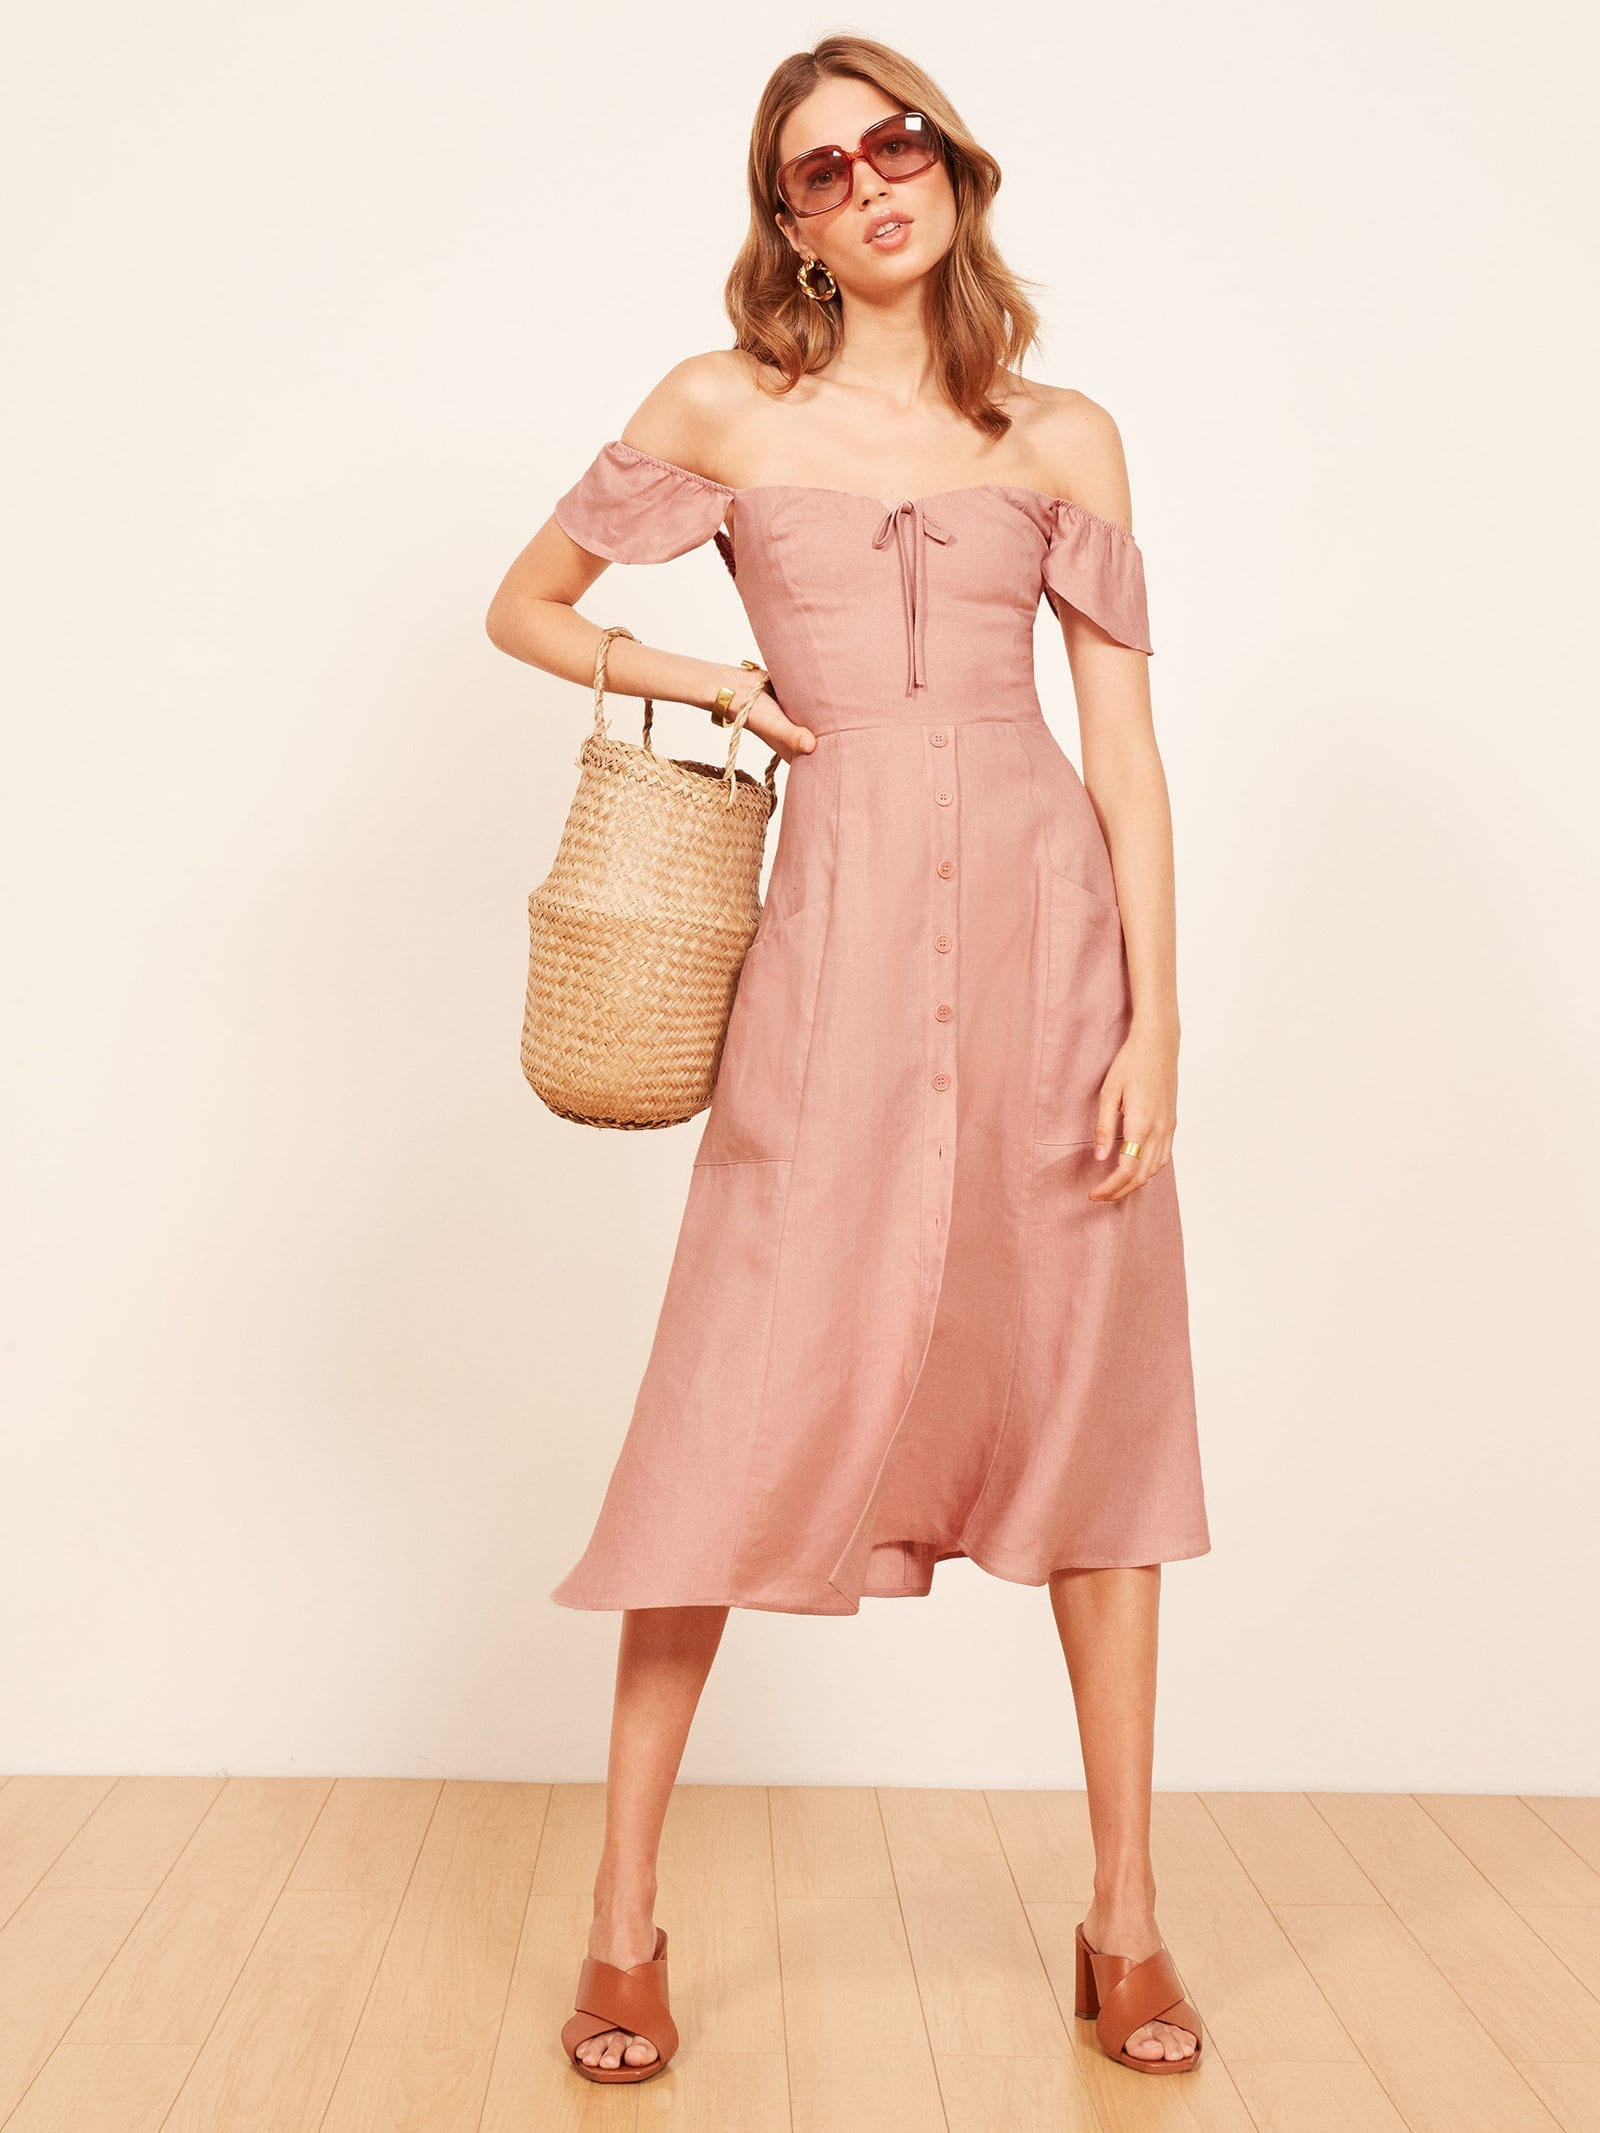 THE REFORMATION Francis Blush Dress